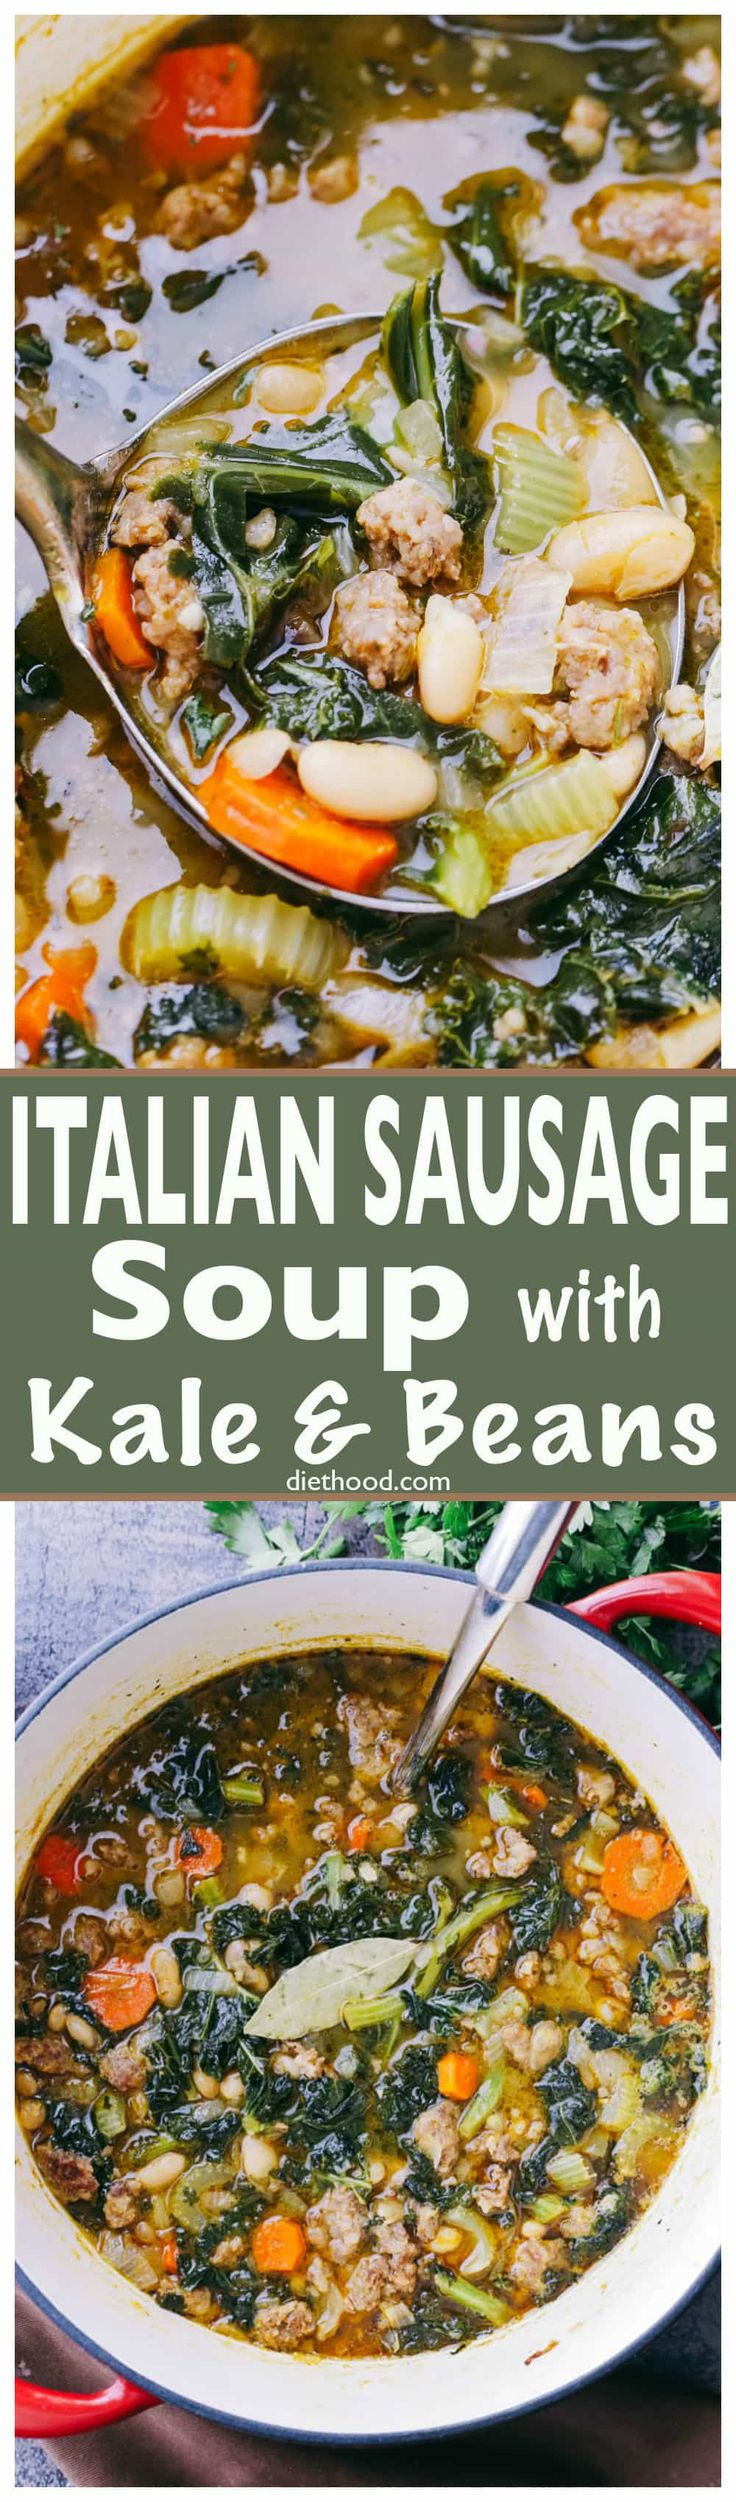 Italian Sausage Soup with Kale and Beans - Hearty and incredibly delicious #soup prepared with Italian Sausage, onions, garlic, kale, and beans!